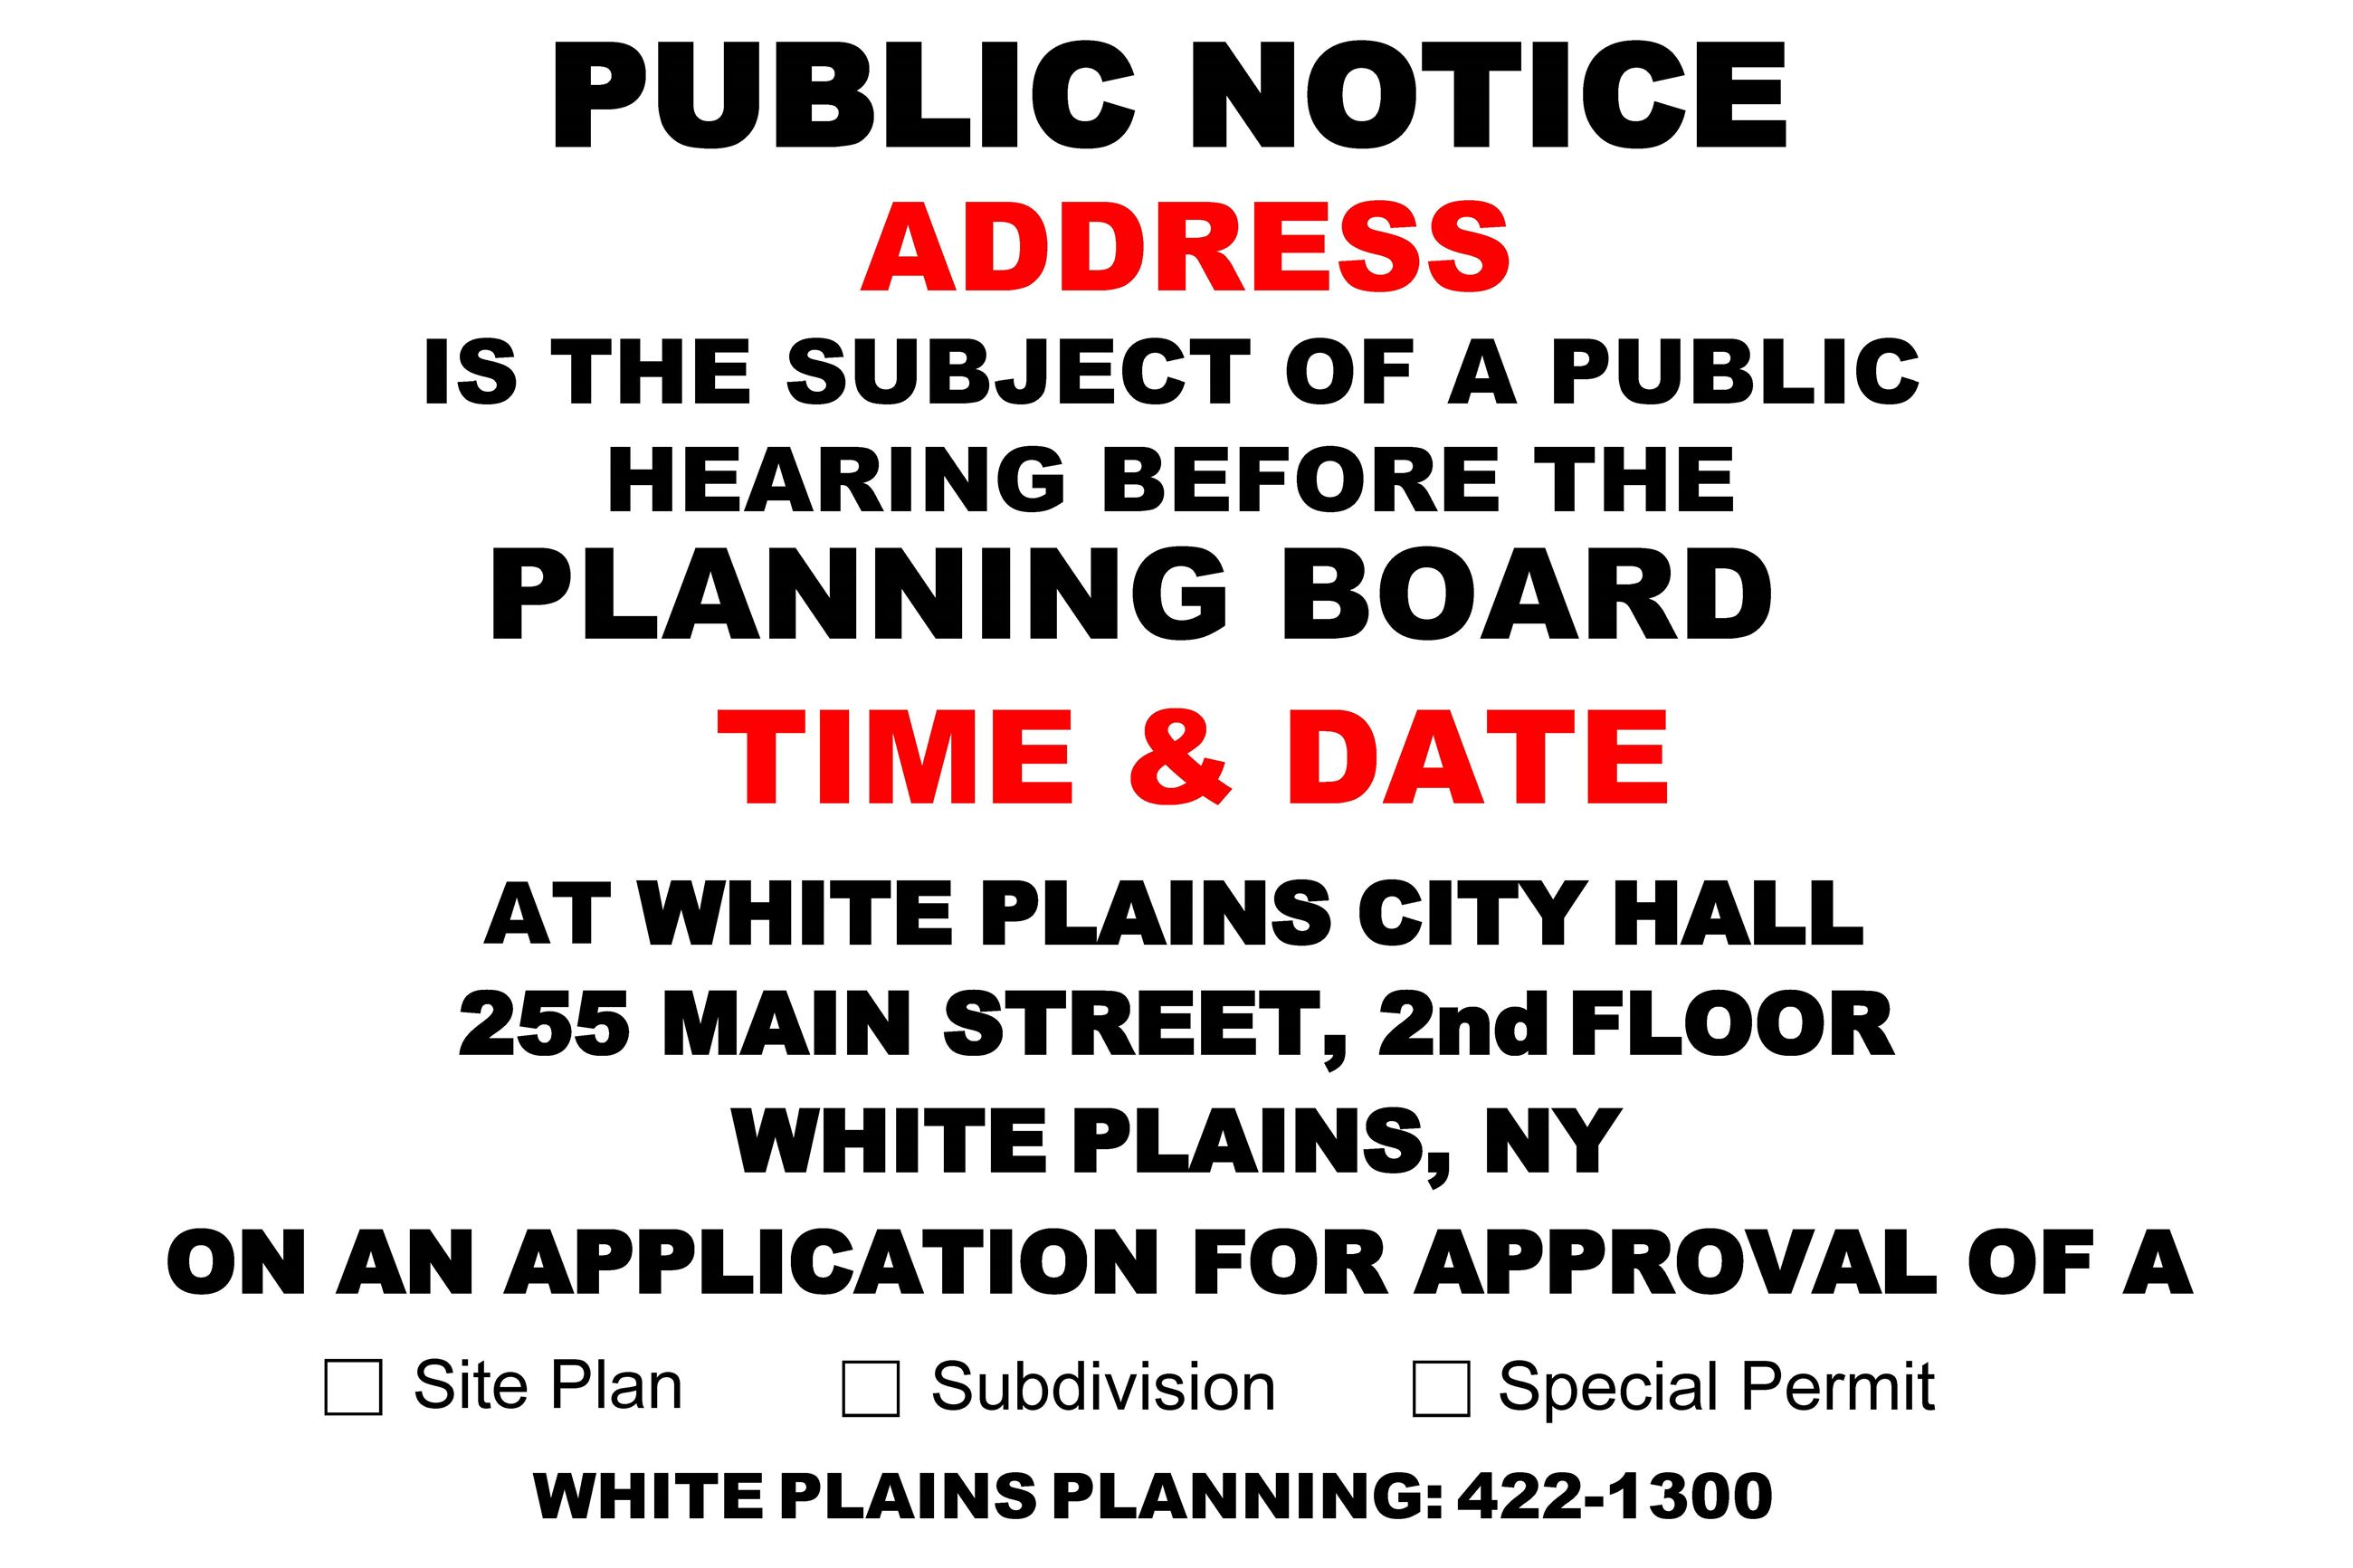 Planning Board PUBLIC NOTICE Fillable Sign